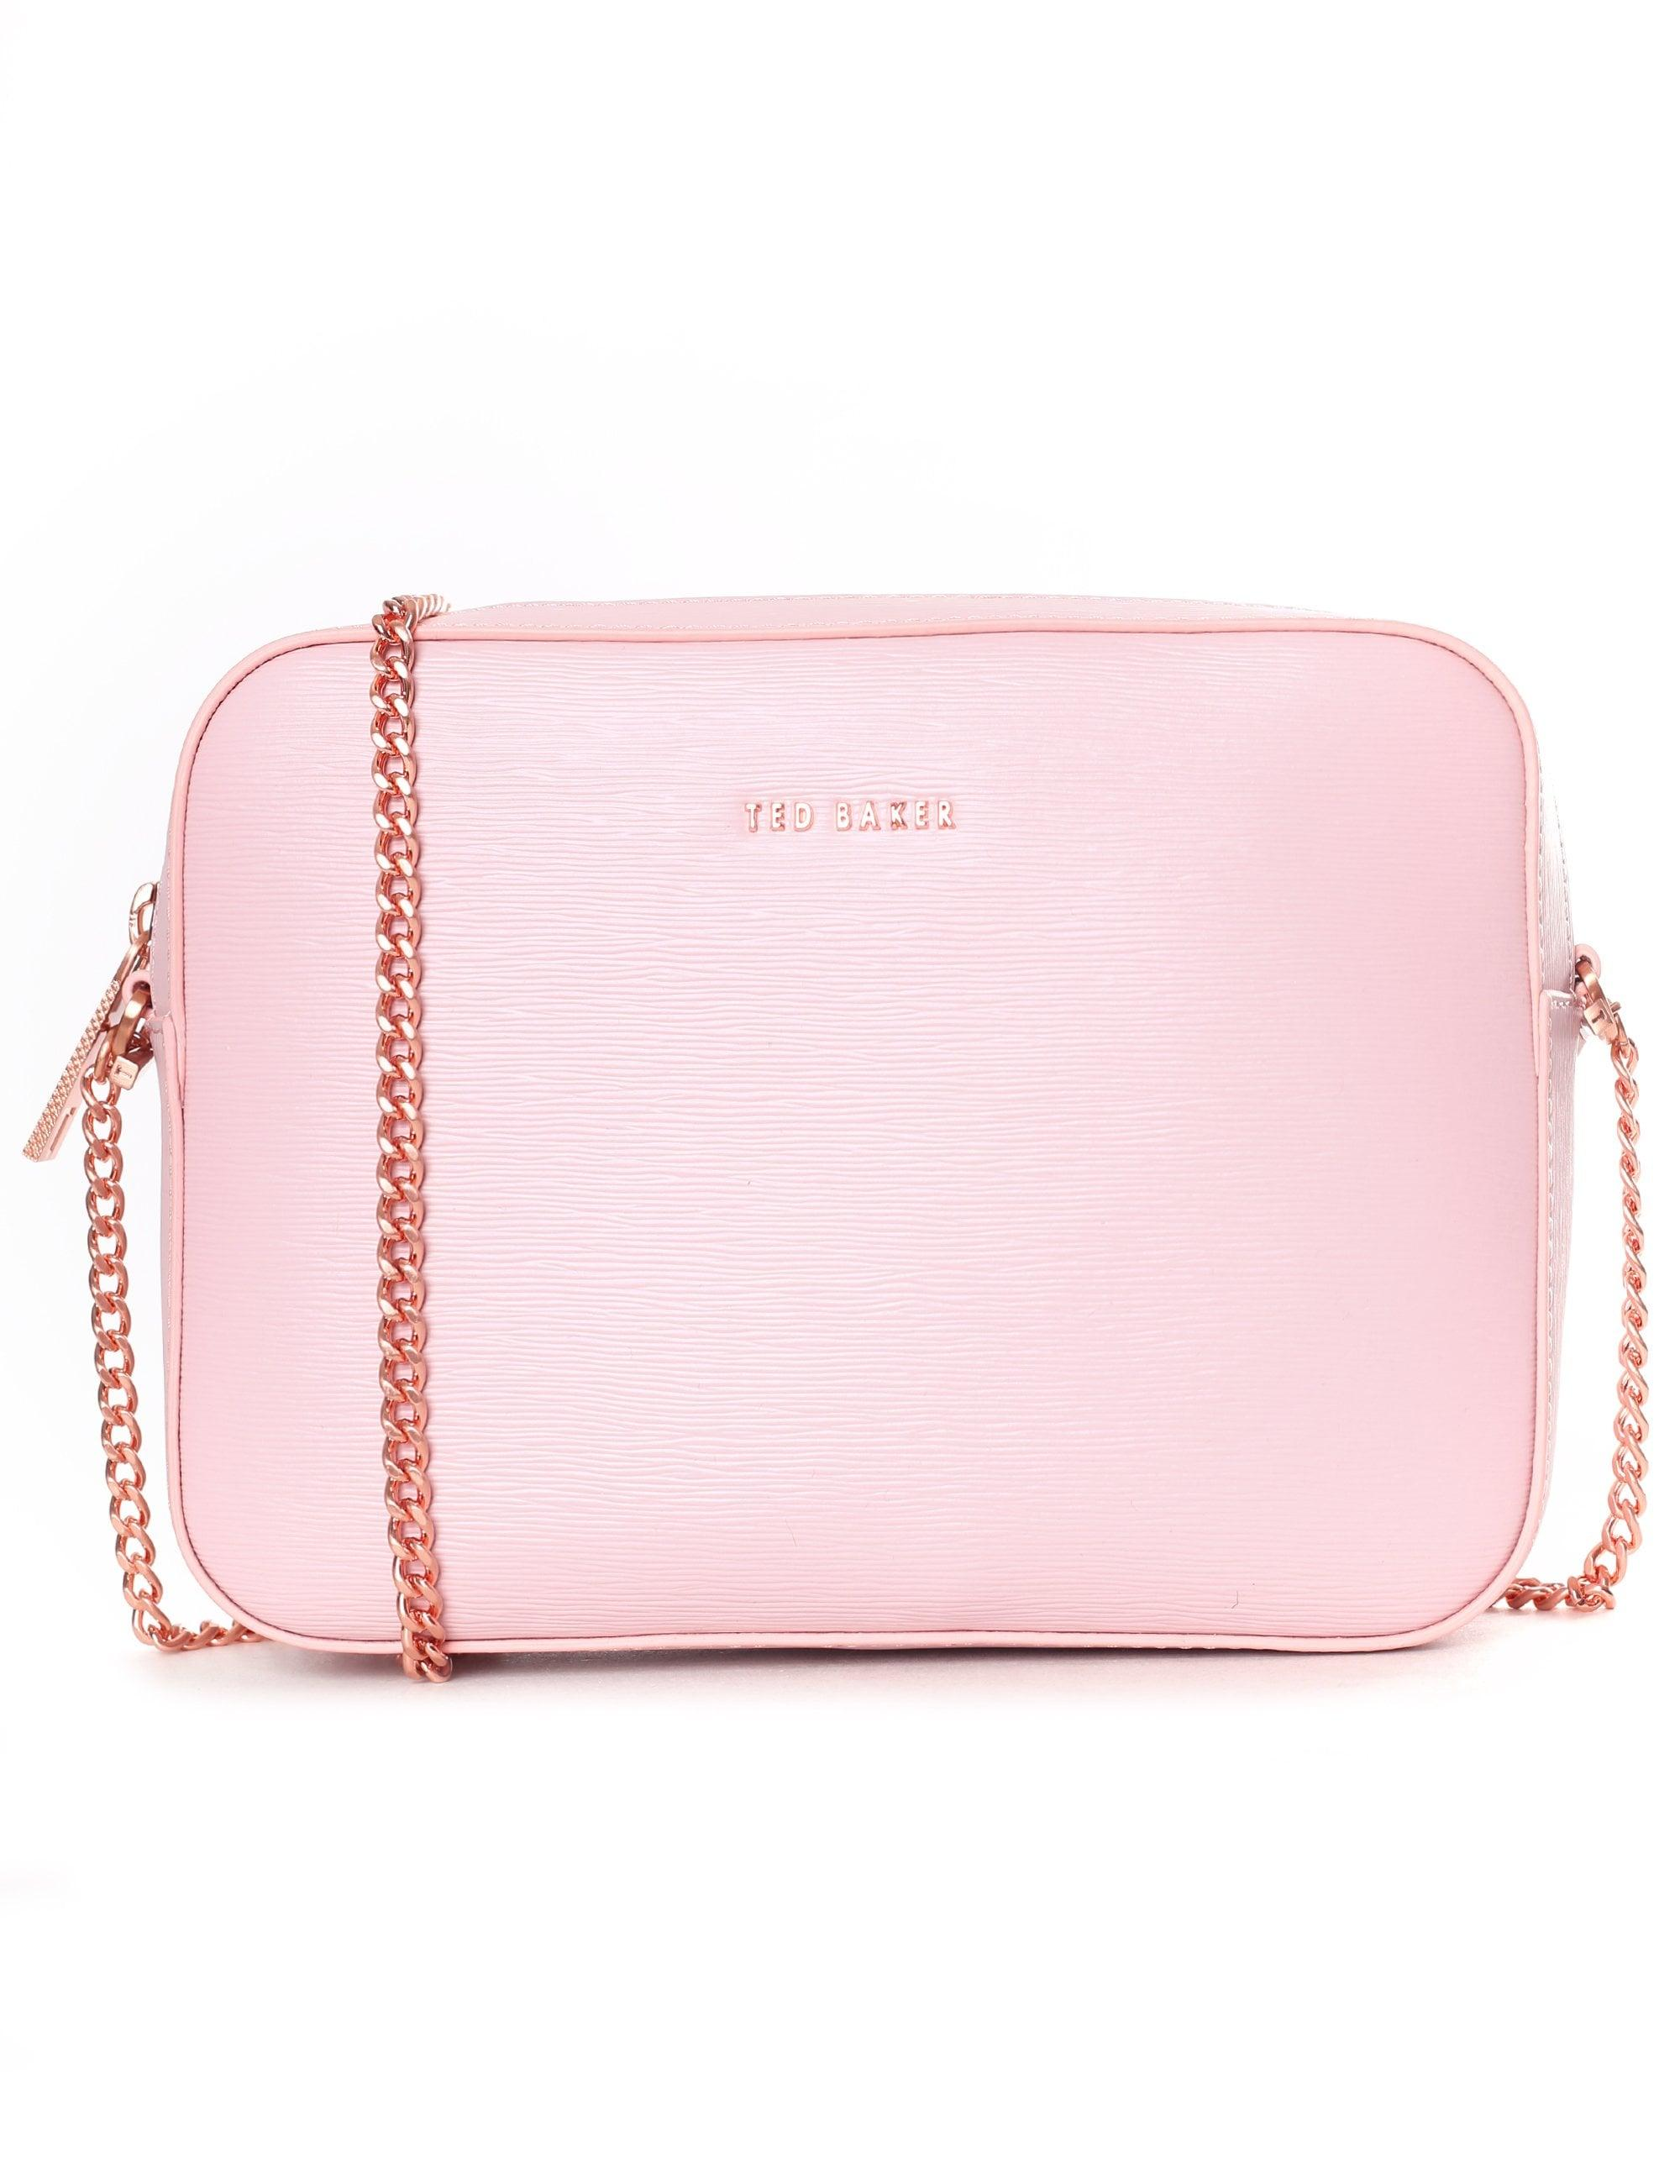 dc2aba3c9 Ted Baker - Women s Juliie Leather Cross Body Camera Bag Light Pink - Lyst.  View fullscreen